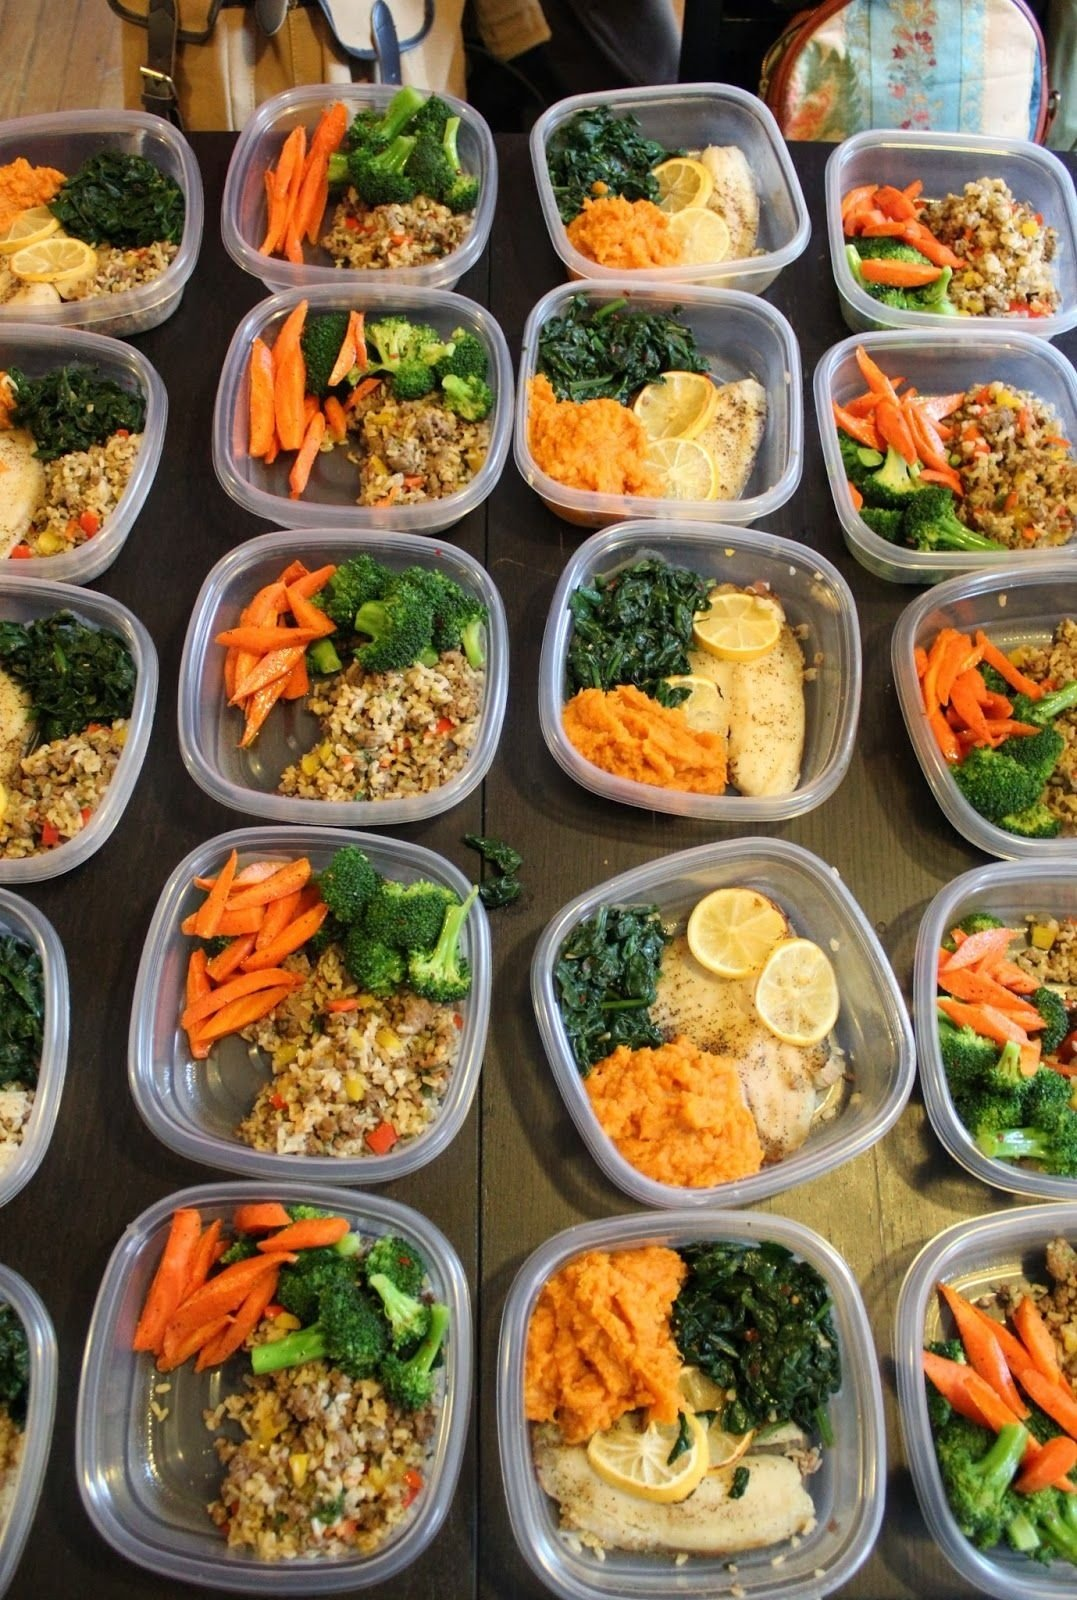 10 Amazing Healthy Meal Ideas On A Budget mealprep expert tips for easy healthy and affordable meals all 2020